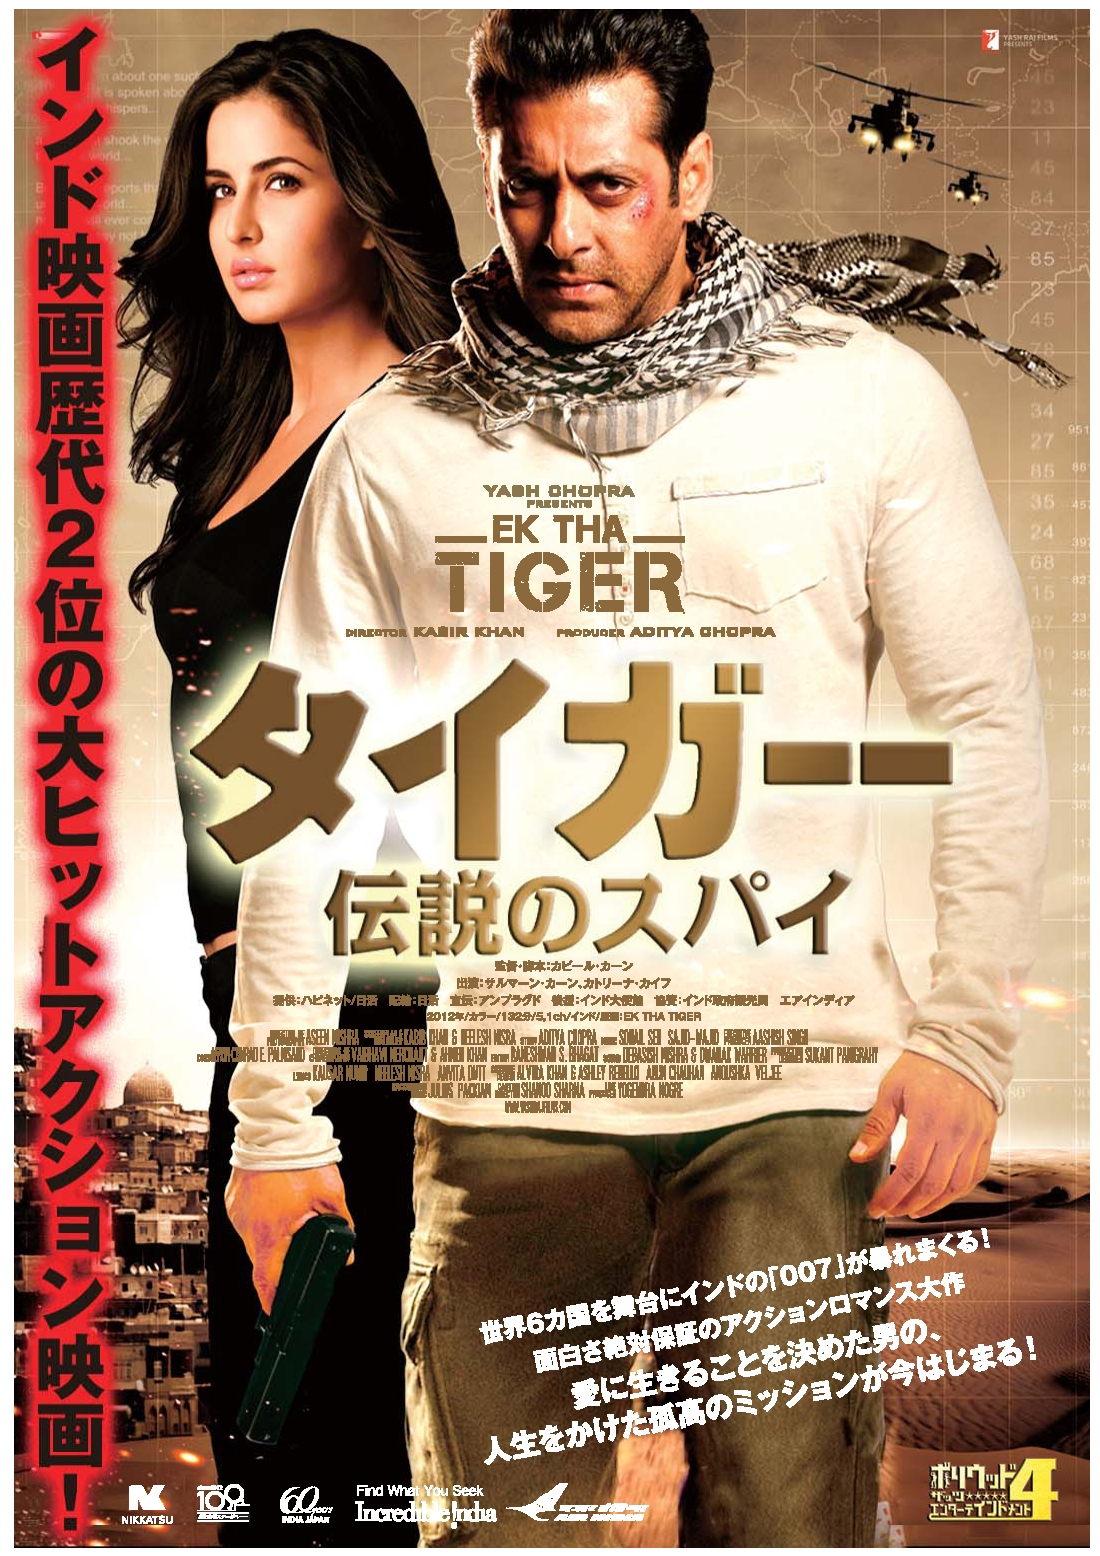 ETT Japan poster  Ek Tha Tiger   Tiger The Legendary Spy'  Premieres in Japan!